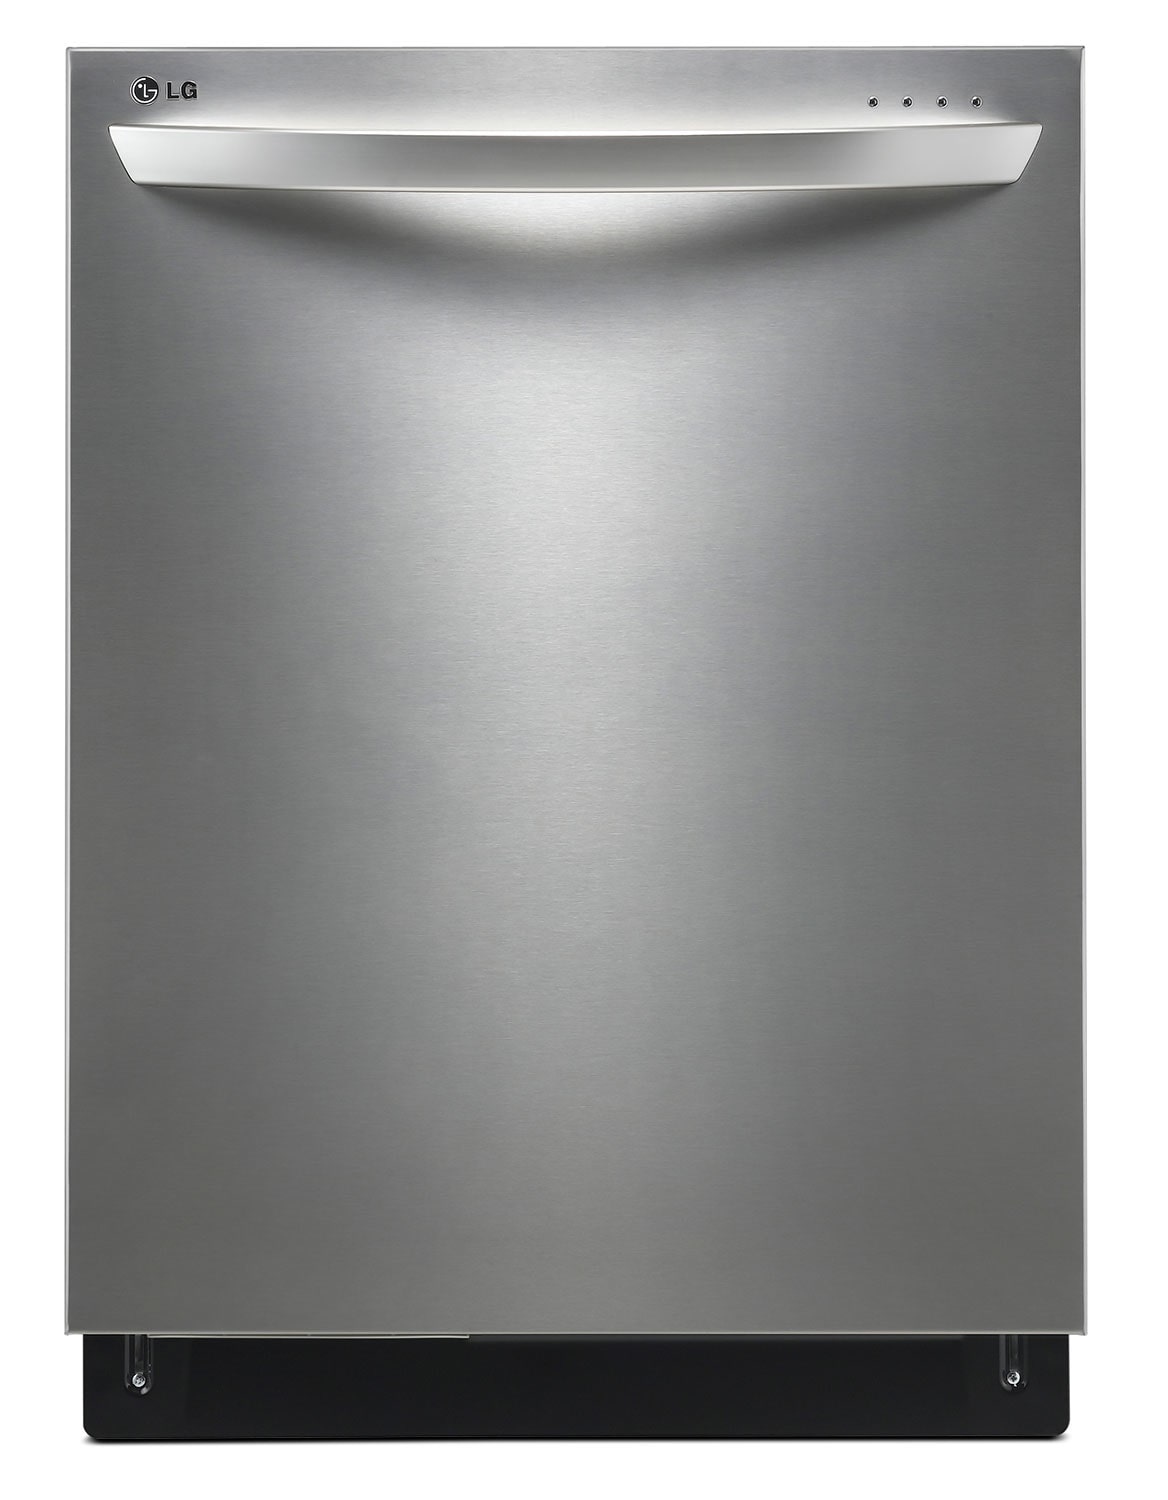 LG Fully Integrated Dishwasher with TrueSteam™ – Stainless Steel